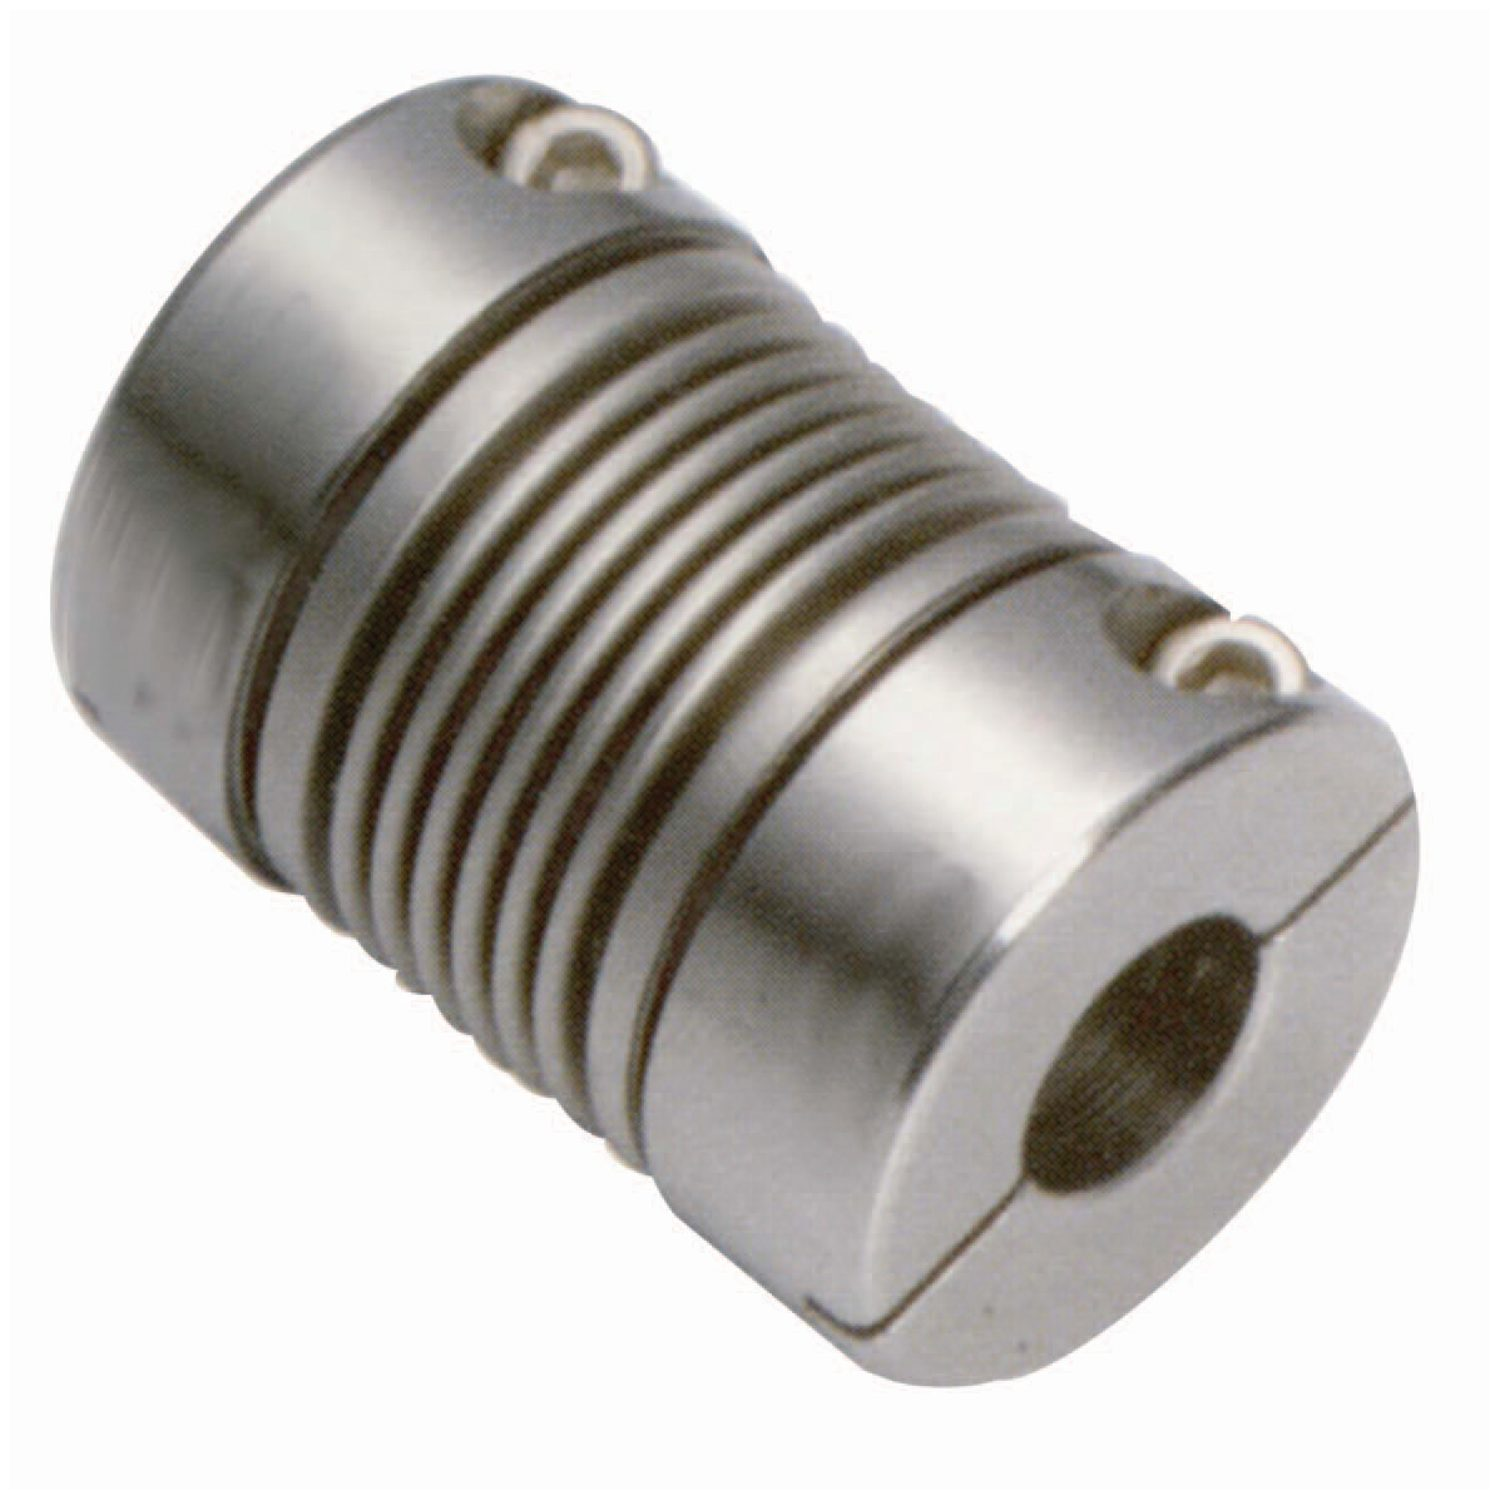 R3010.1 - Bellows Coupling - Stainless steel